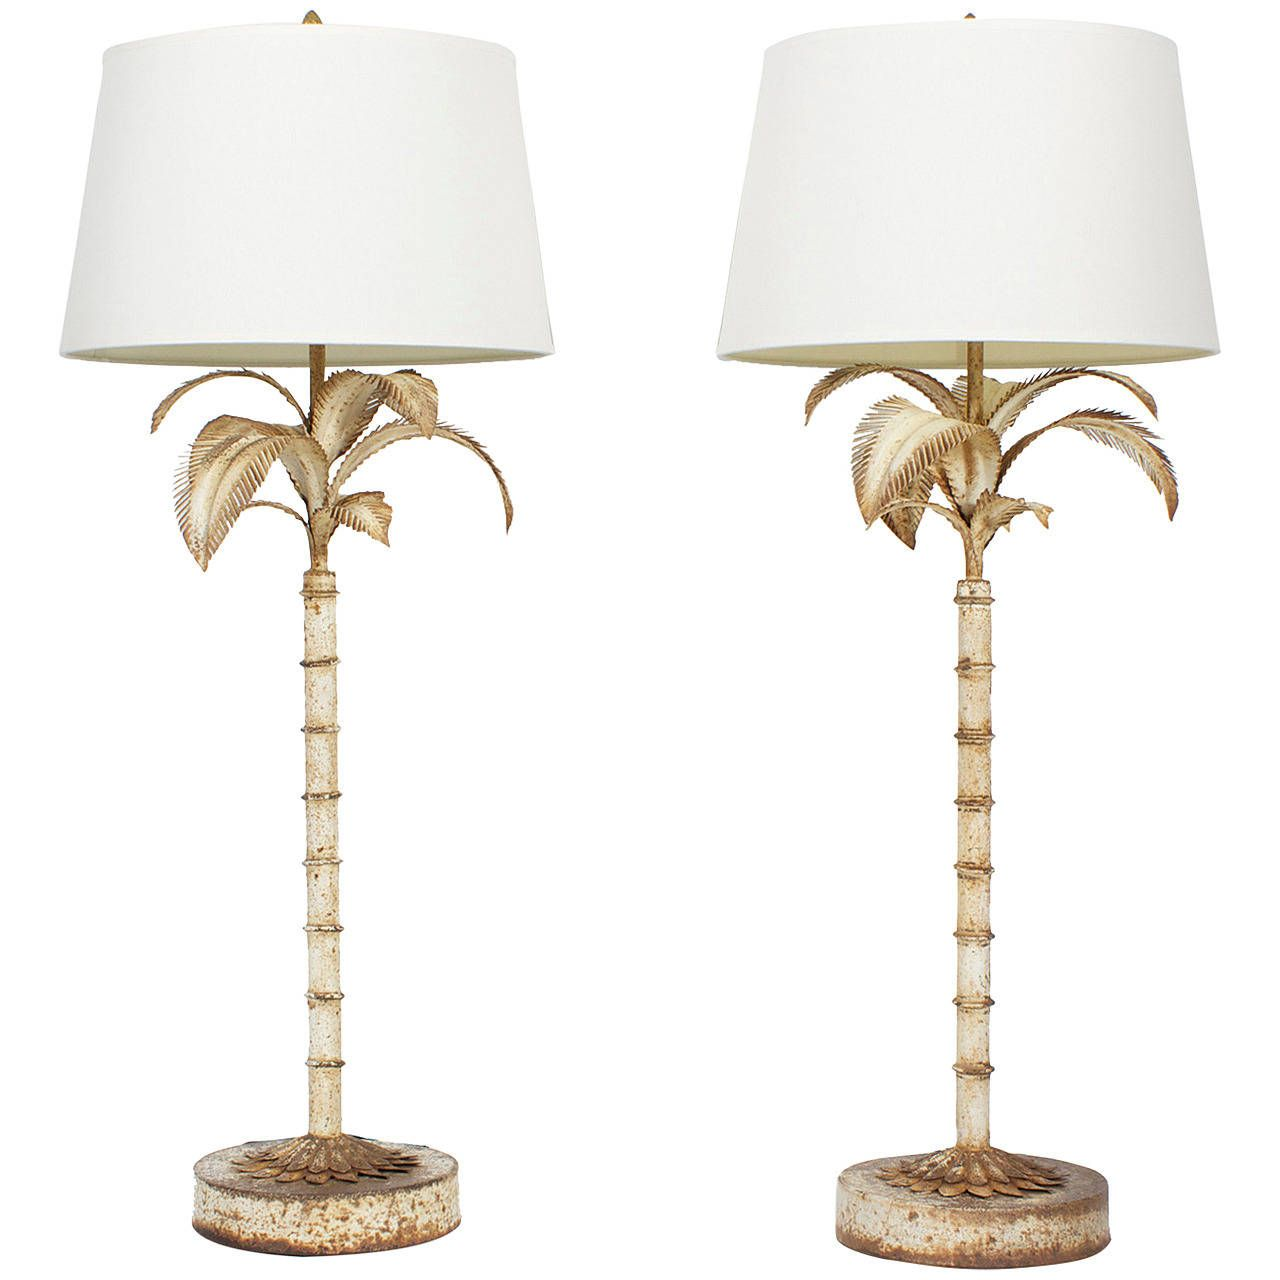 pair of naturally oxidized tall tole palm tree lamps see more antique and modern table - Tall Table Lamps